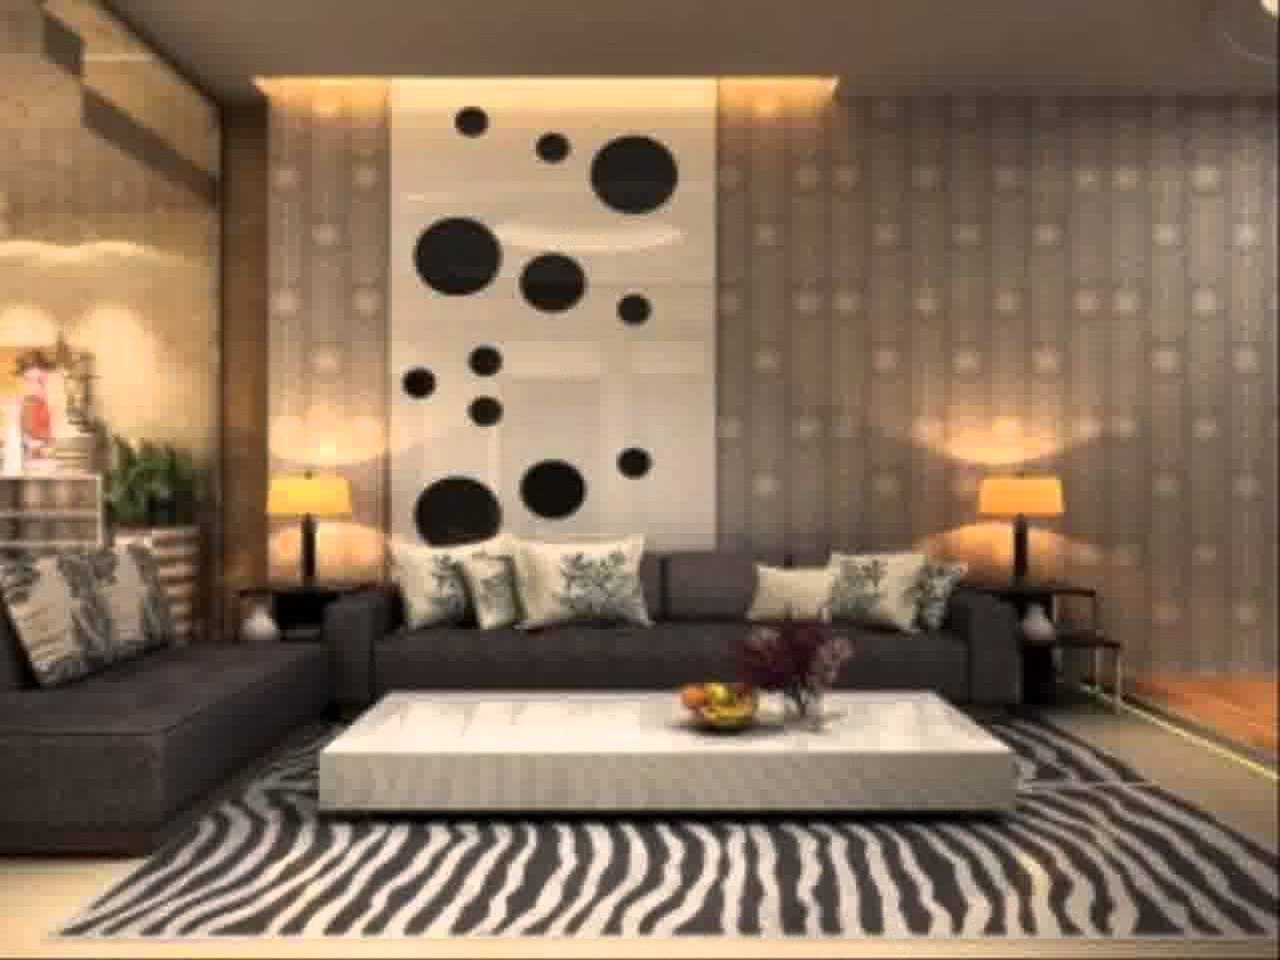 10 Nice Mobile Home Living Room Ideas small mobile home living room ideas youtube 2021